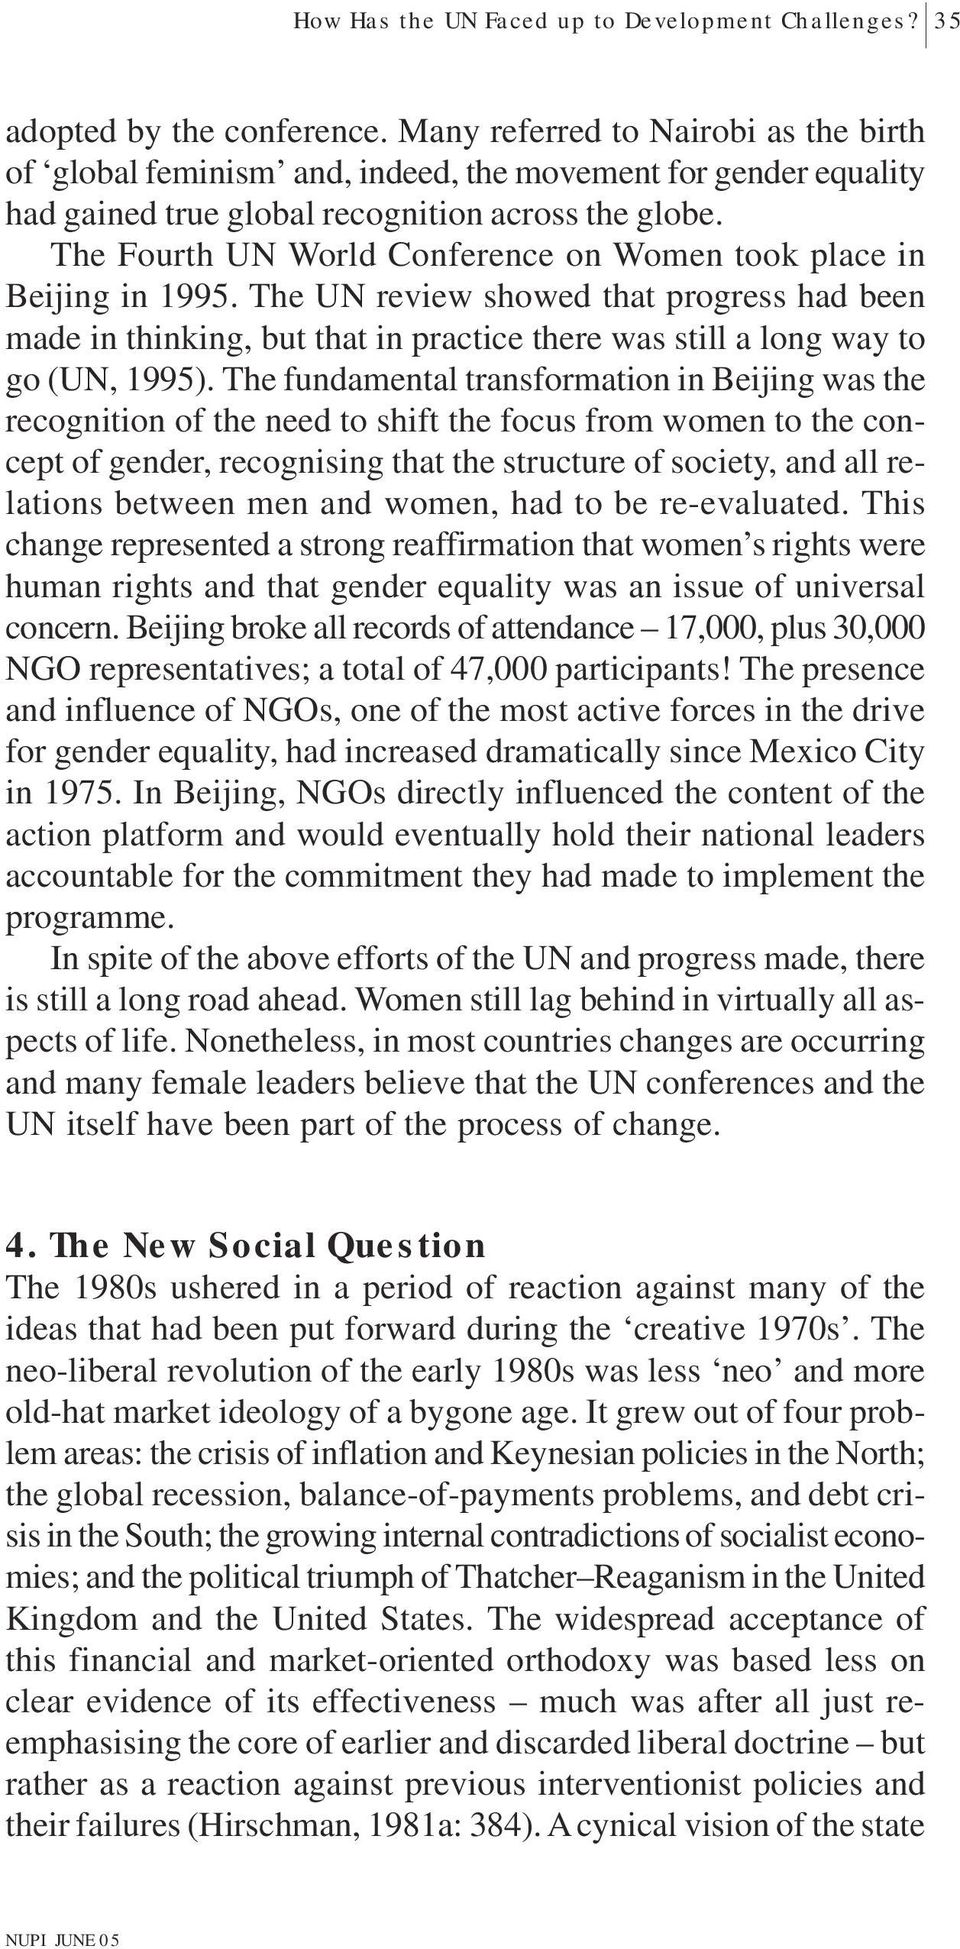 The Fourth UN World Conference on Women took place in Beijing in 1995. The UN review showed that progress had been made in thinking, but that in practice there was still a long way to go (UN, 1995).